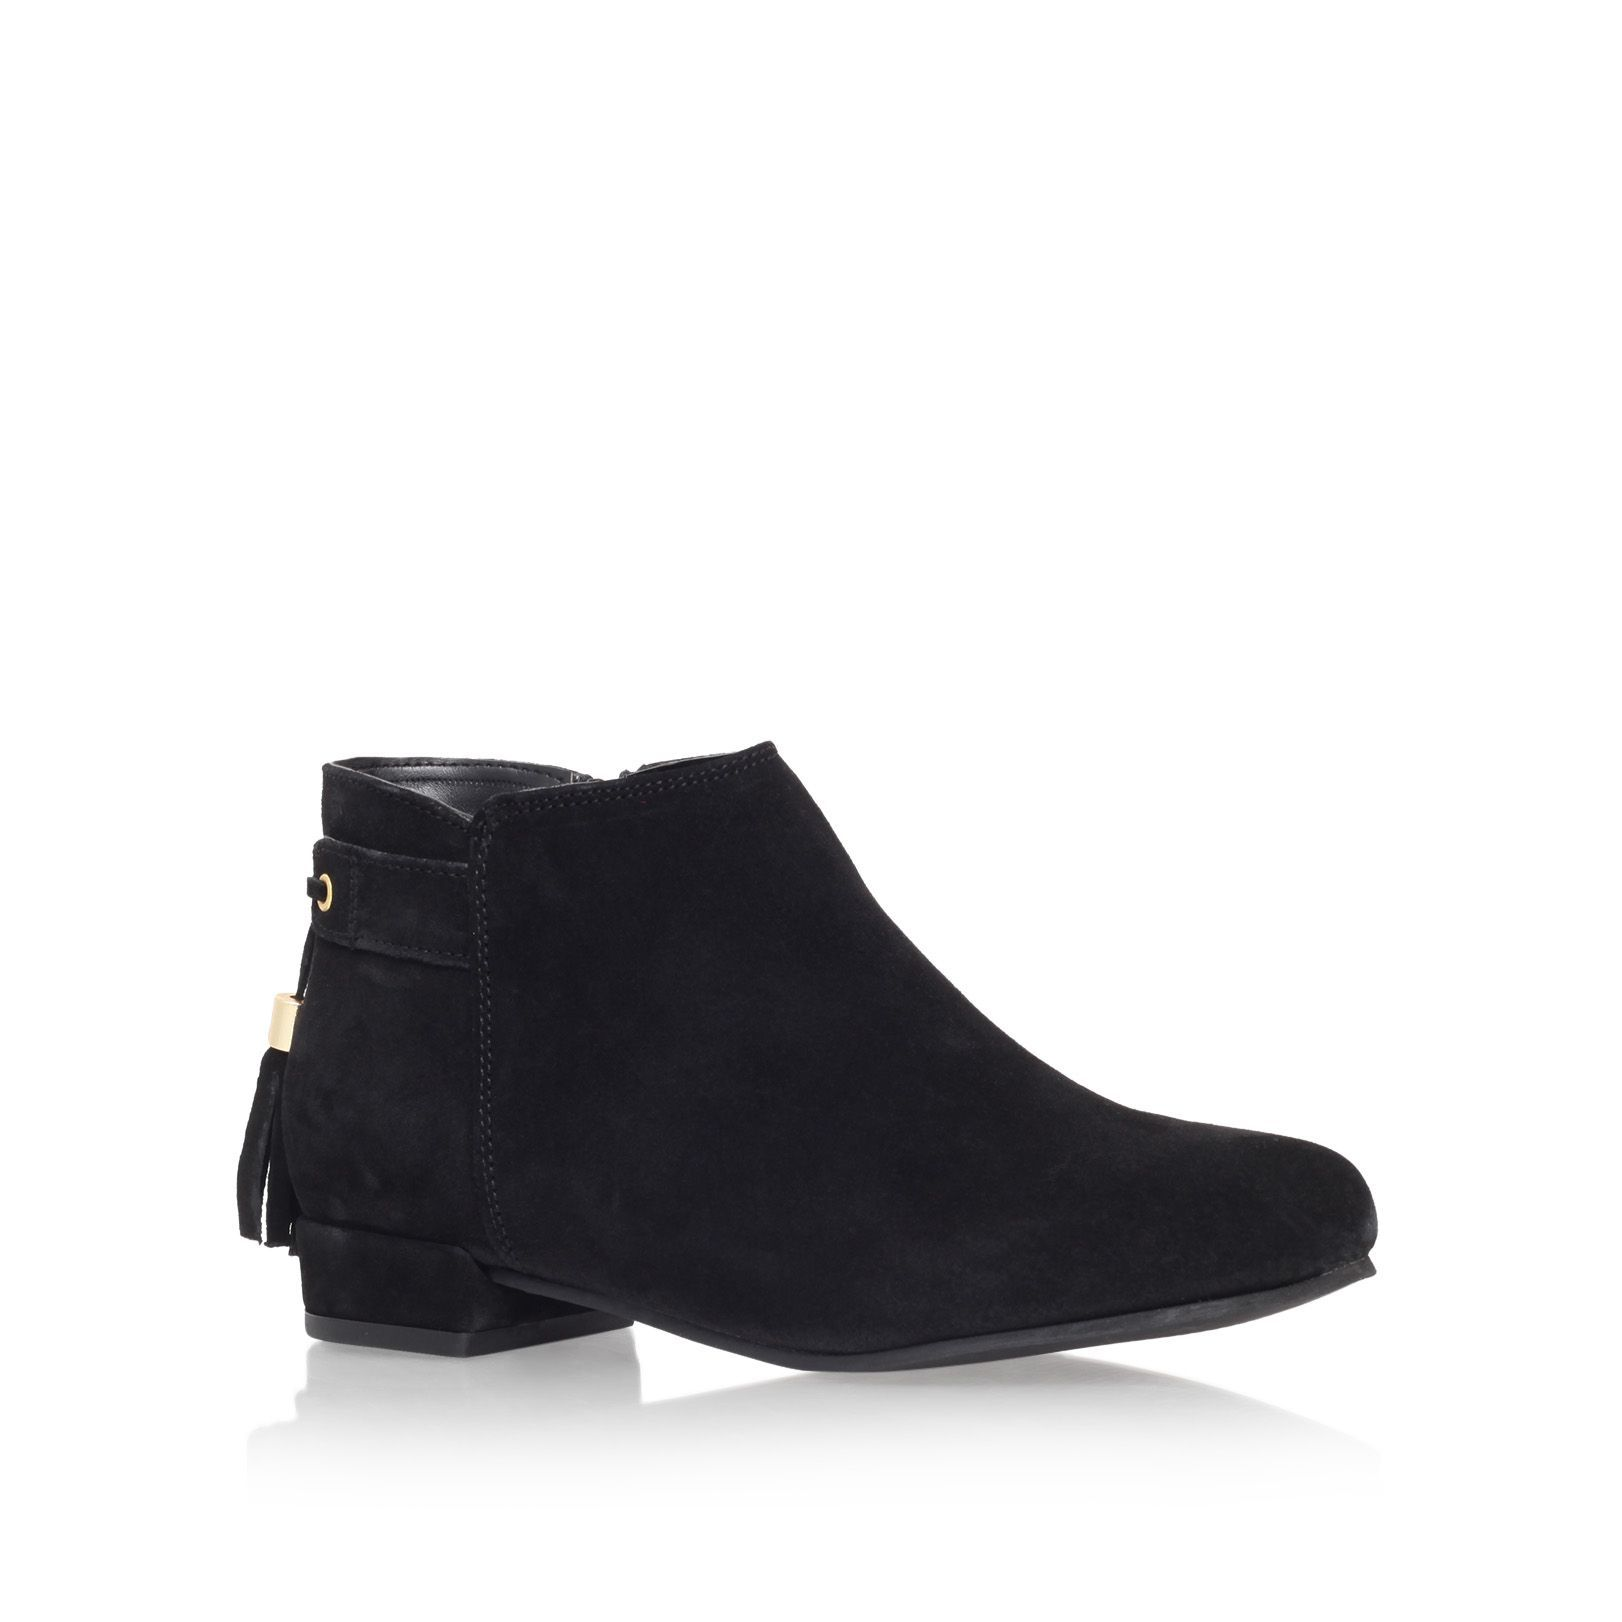 Carvela Tassel flat ankle boots, Black | Ladies Boots | Pinterest ...